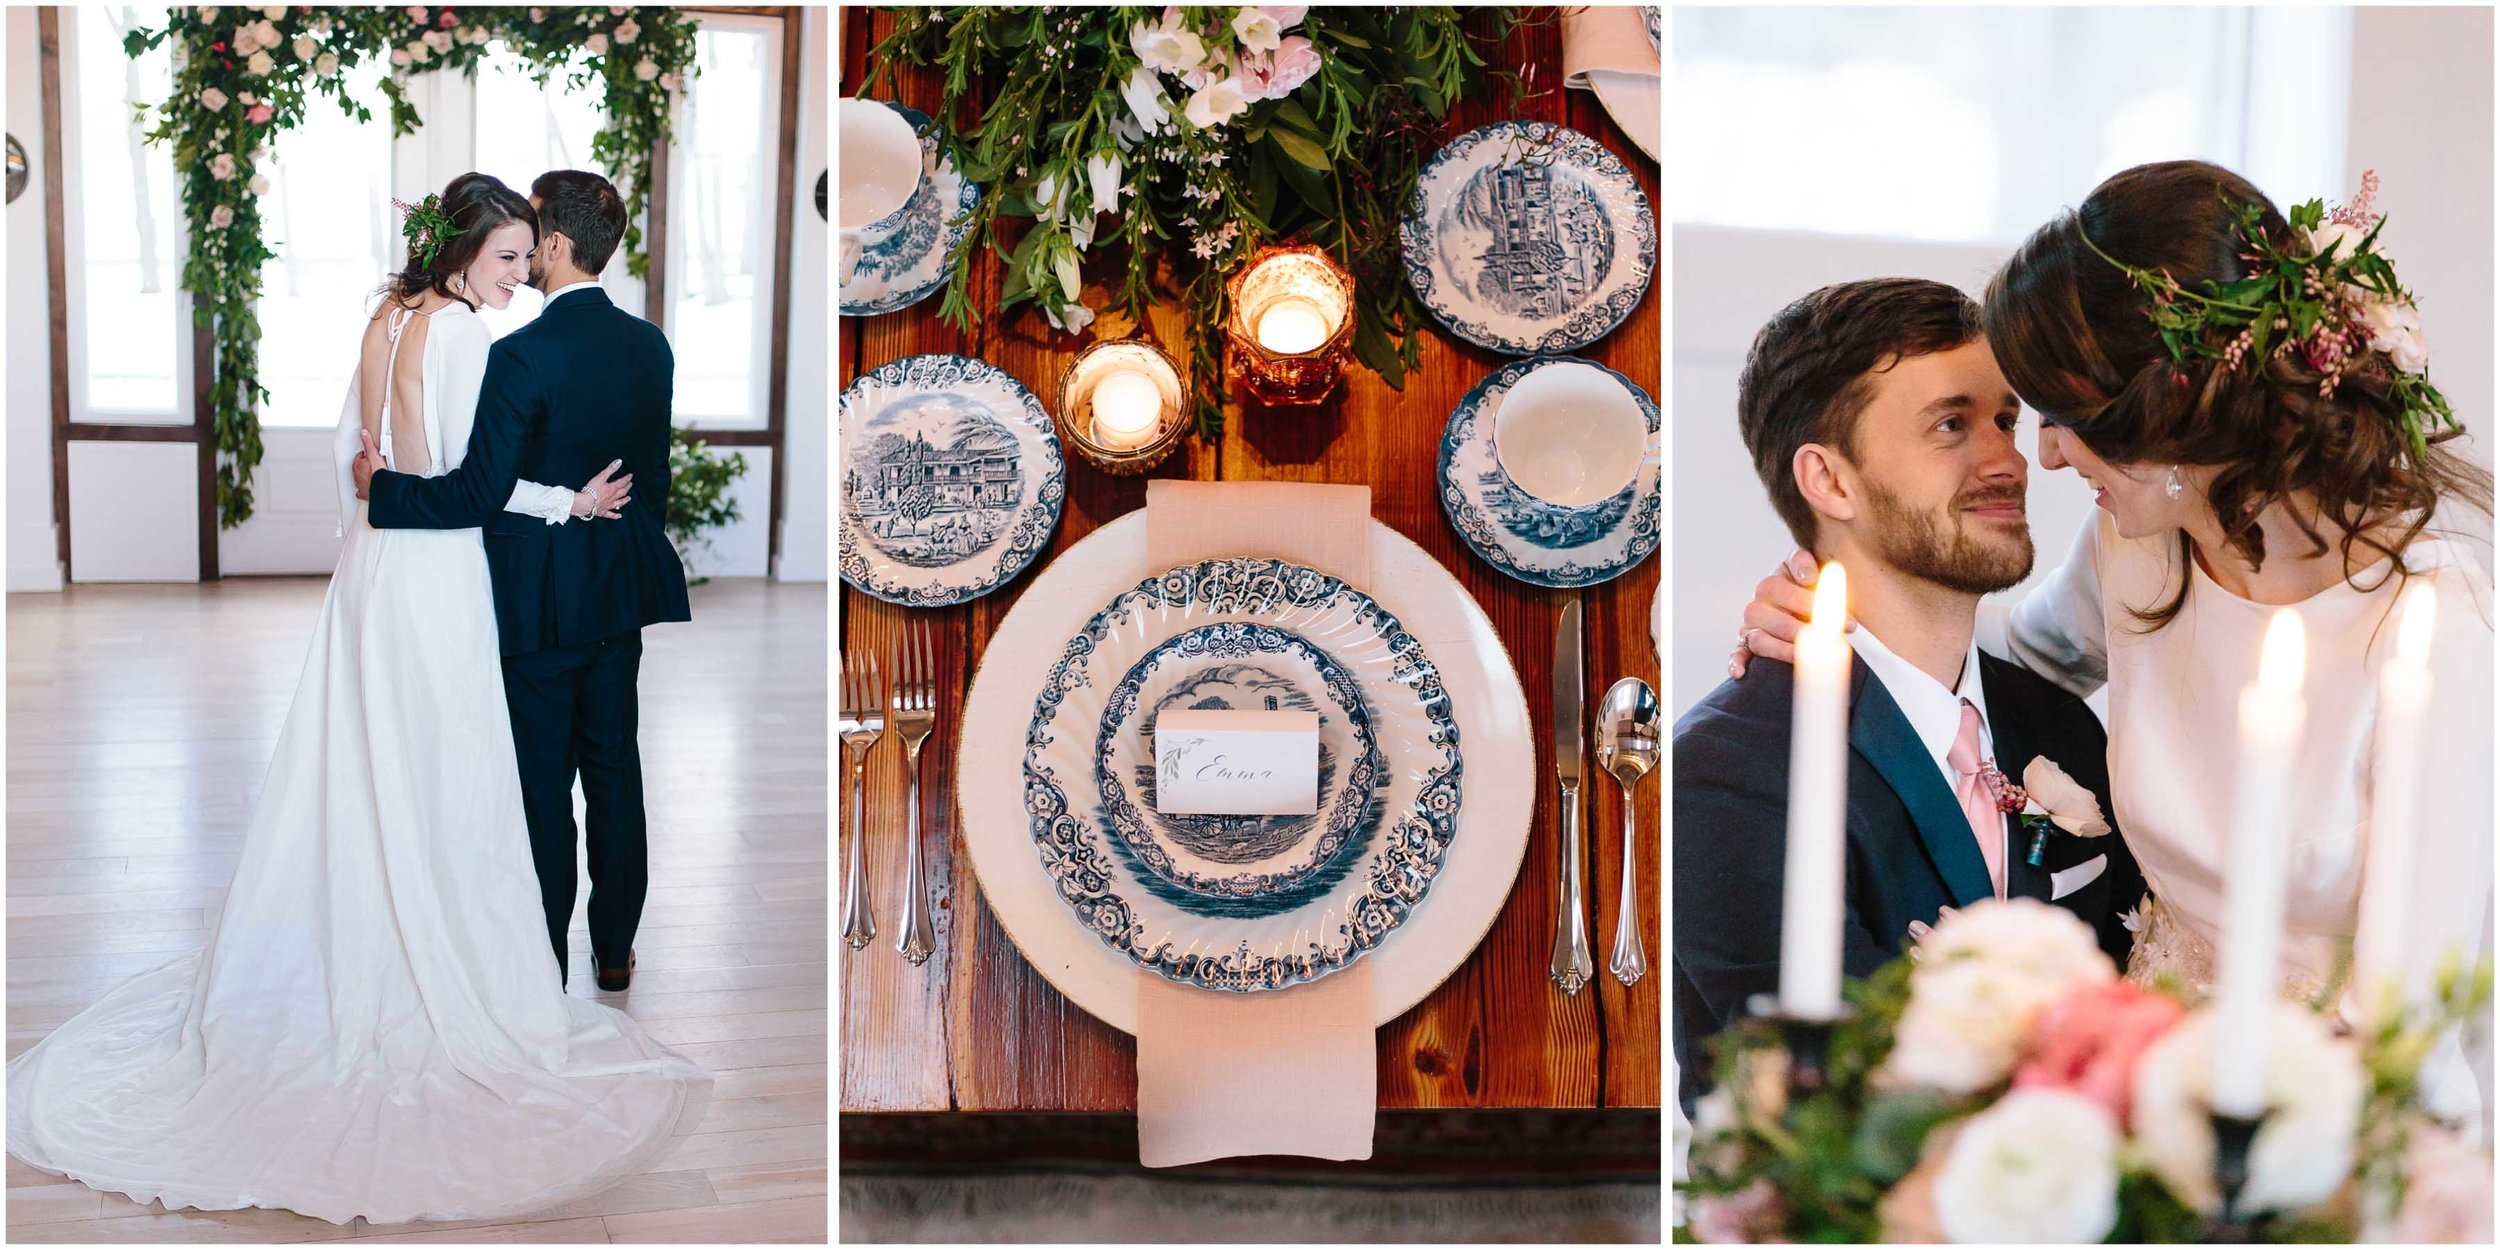 Intimate and romantic styled wedding photography in Lee, Massachusetts in the Berkshires - bride and groom and tablescape